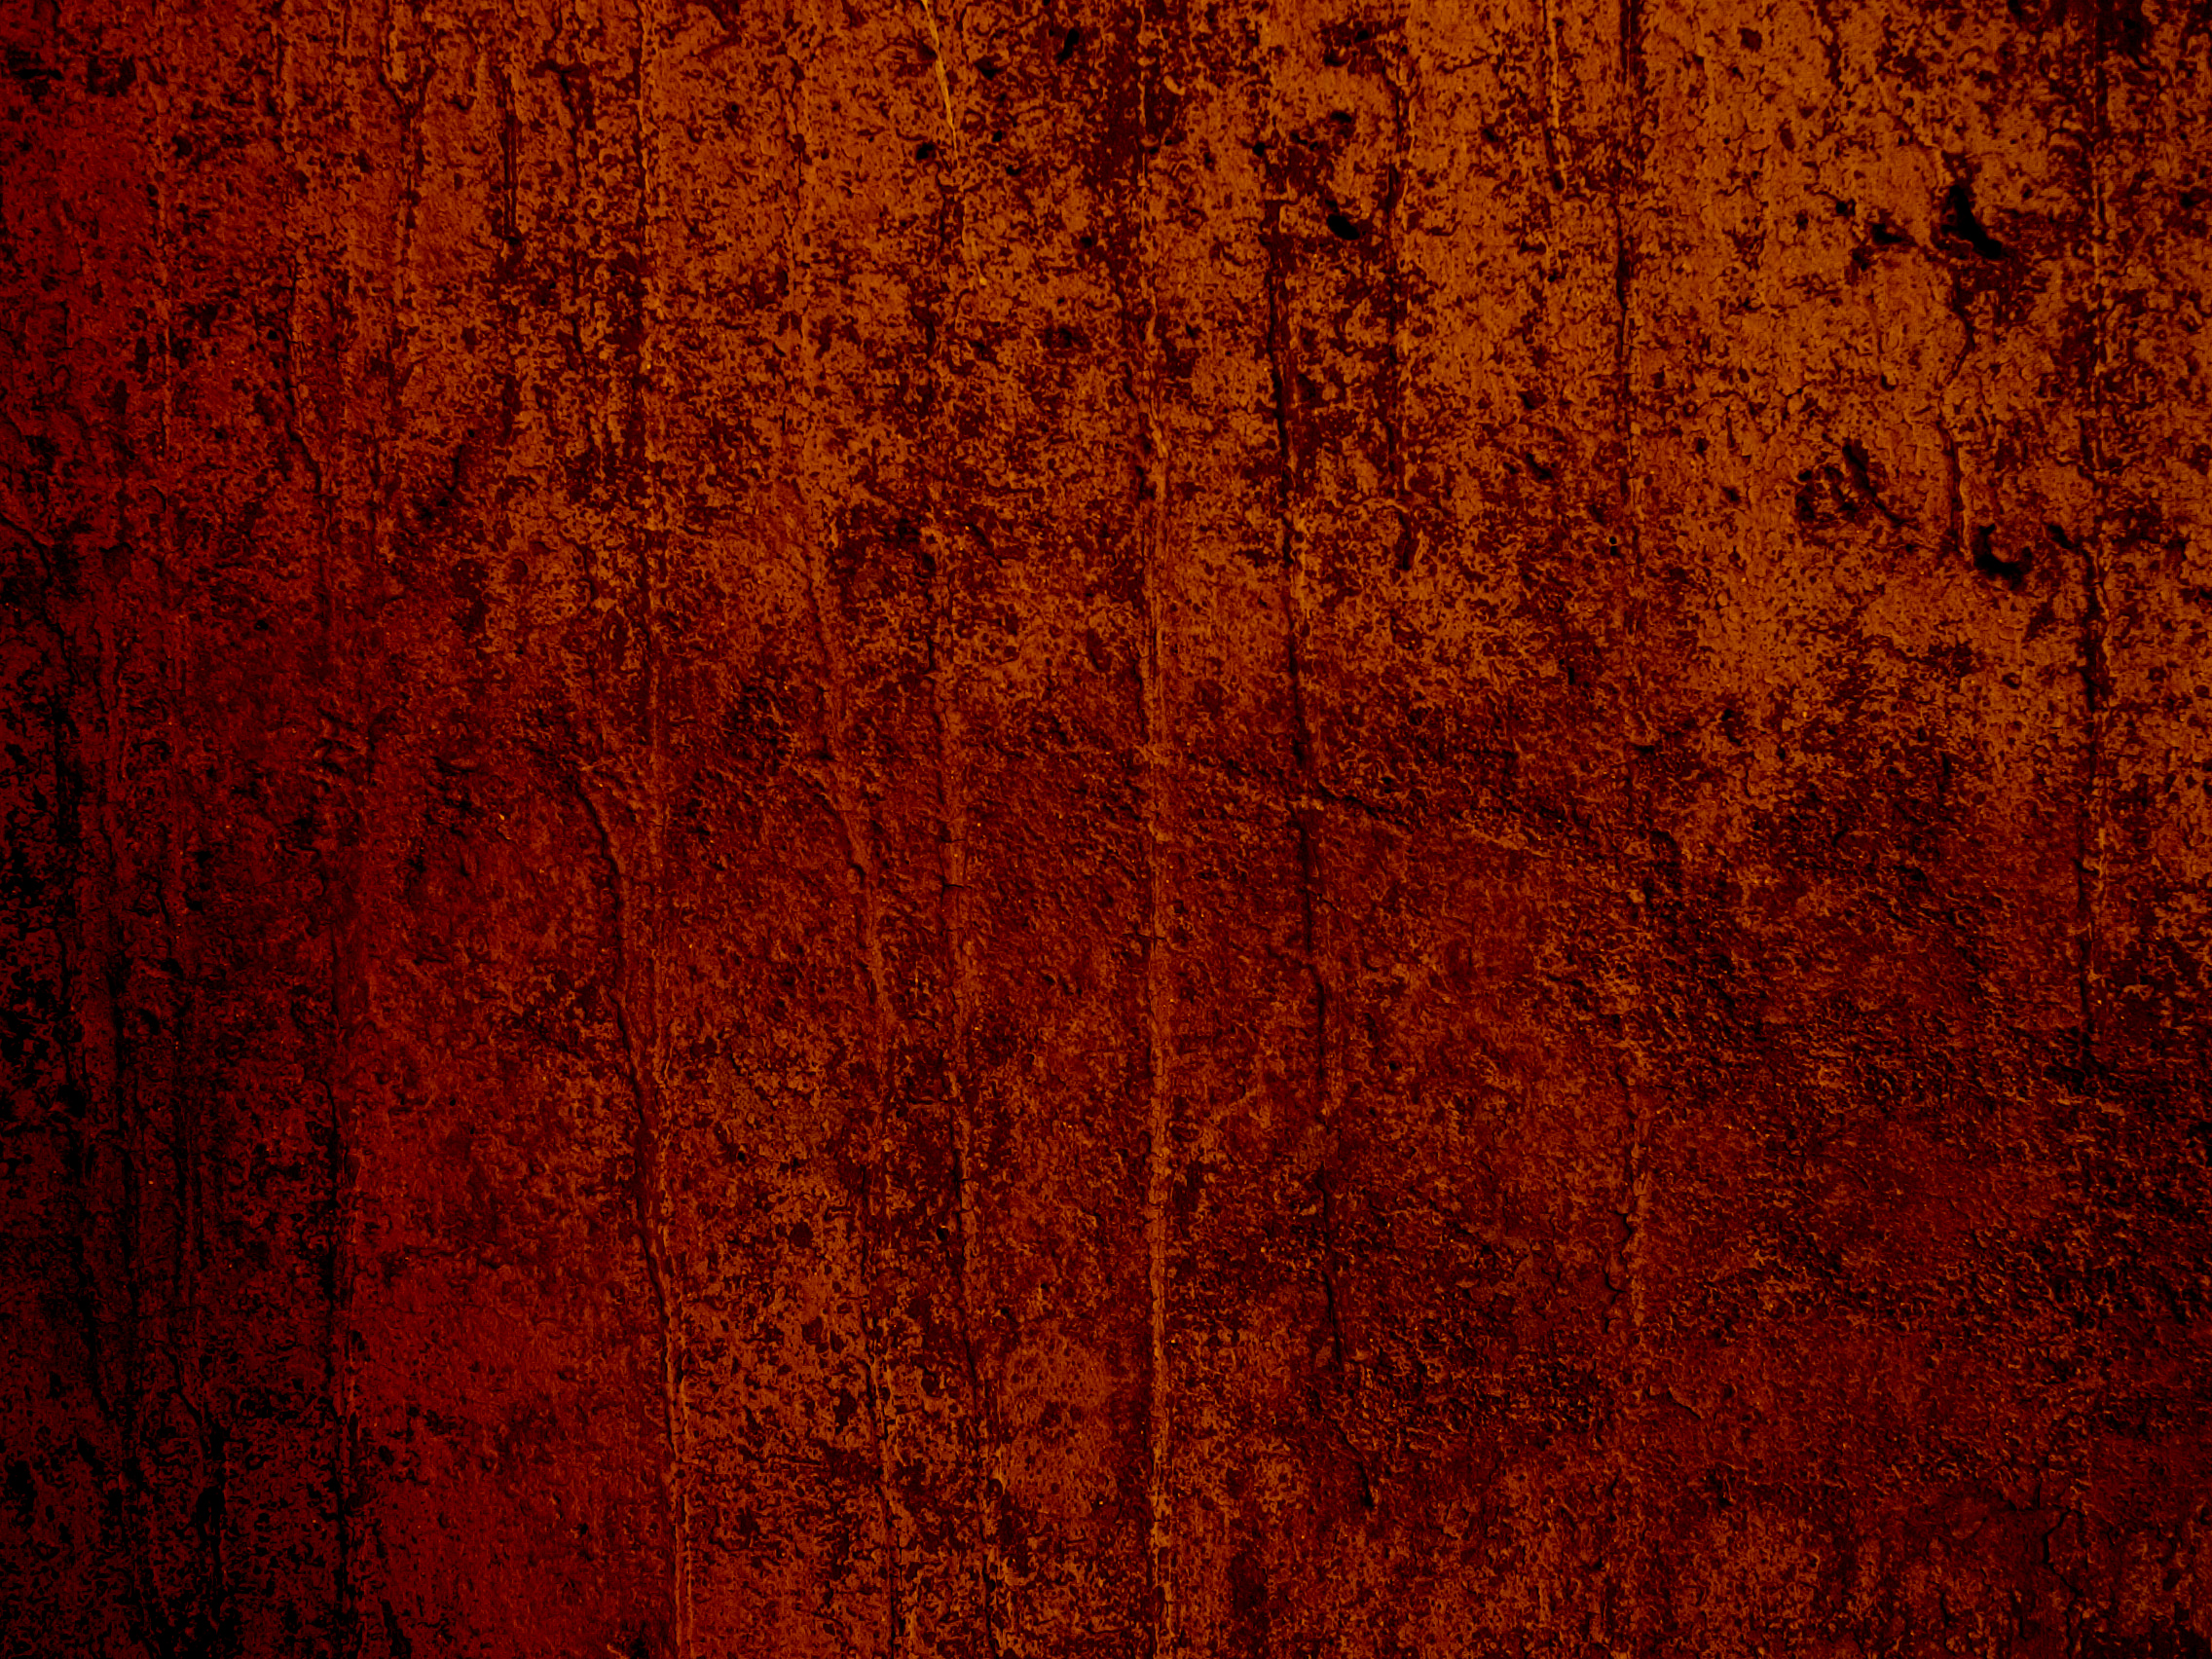 Texture background wallpaper wallpapersafari for Textures and backgrounds